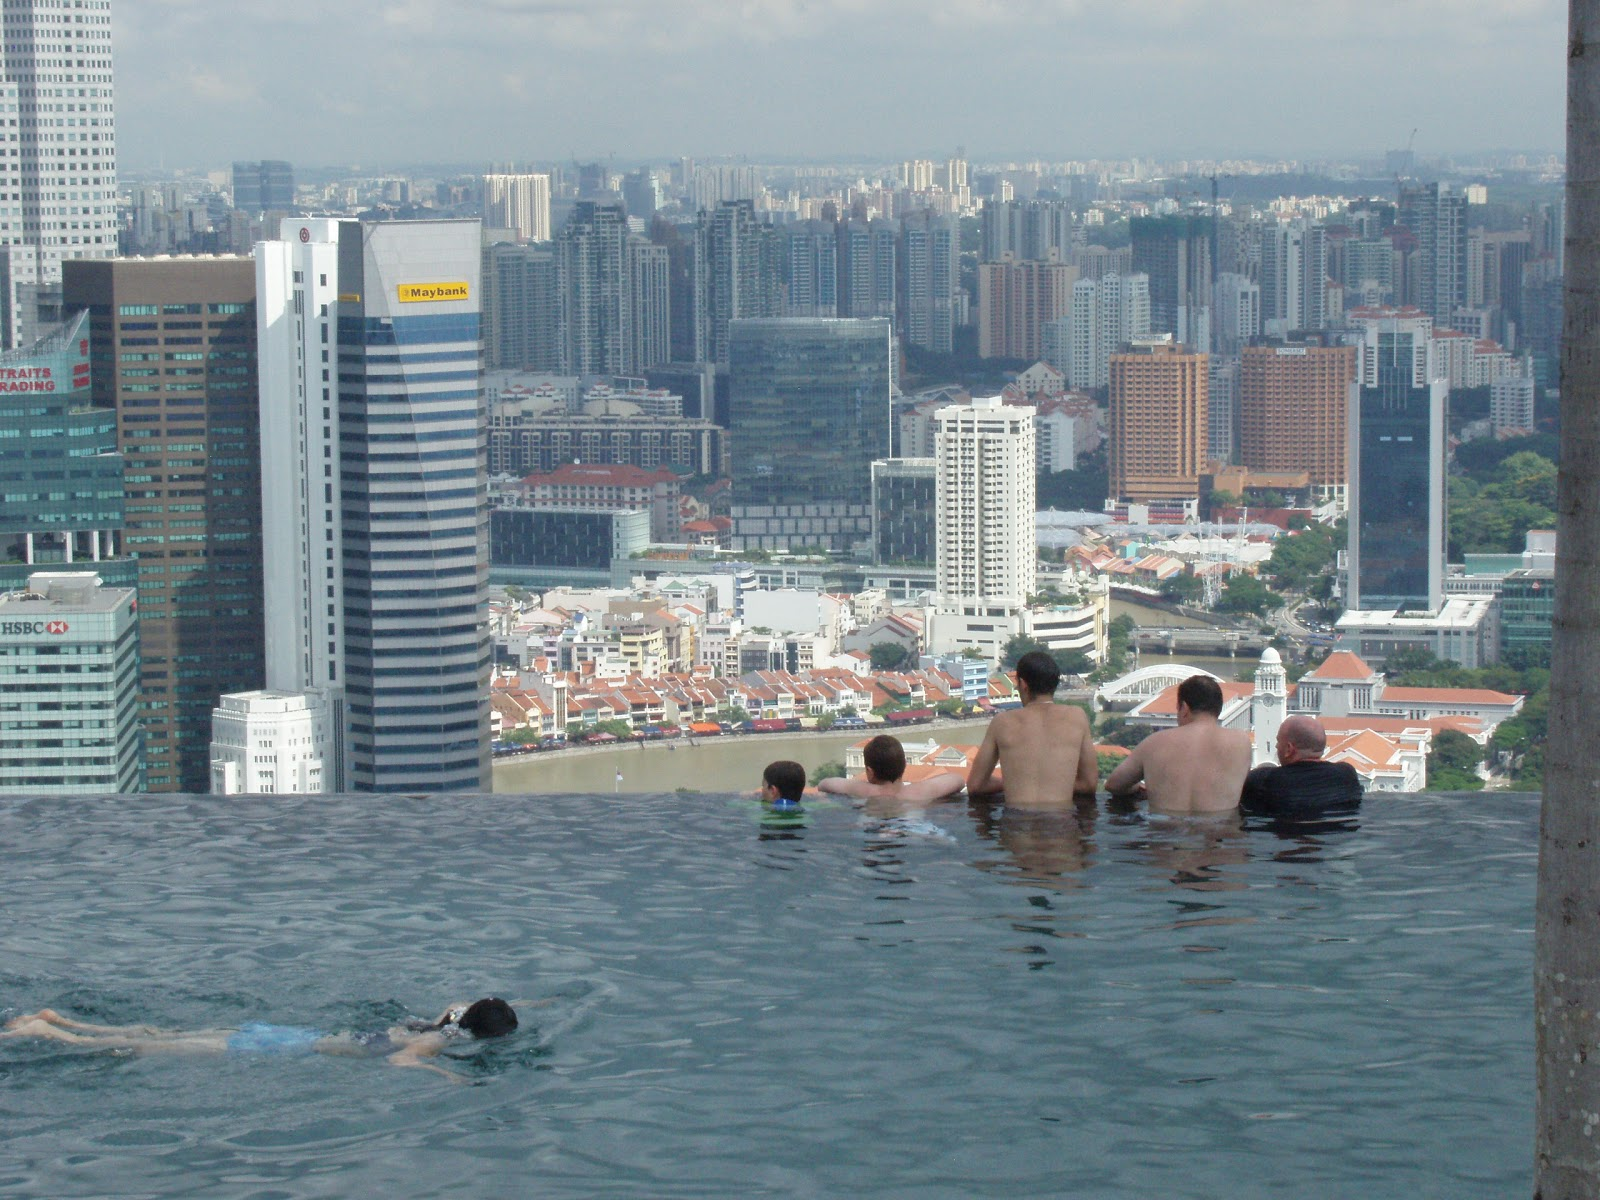 Singapore Hotel With Infinity Pool On Rooftop Image In England Not Swimming In Singapore S Rooftop Infinity Pool